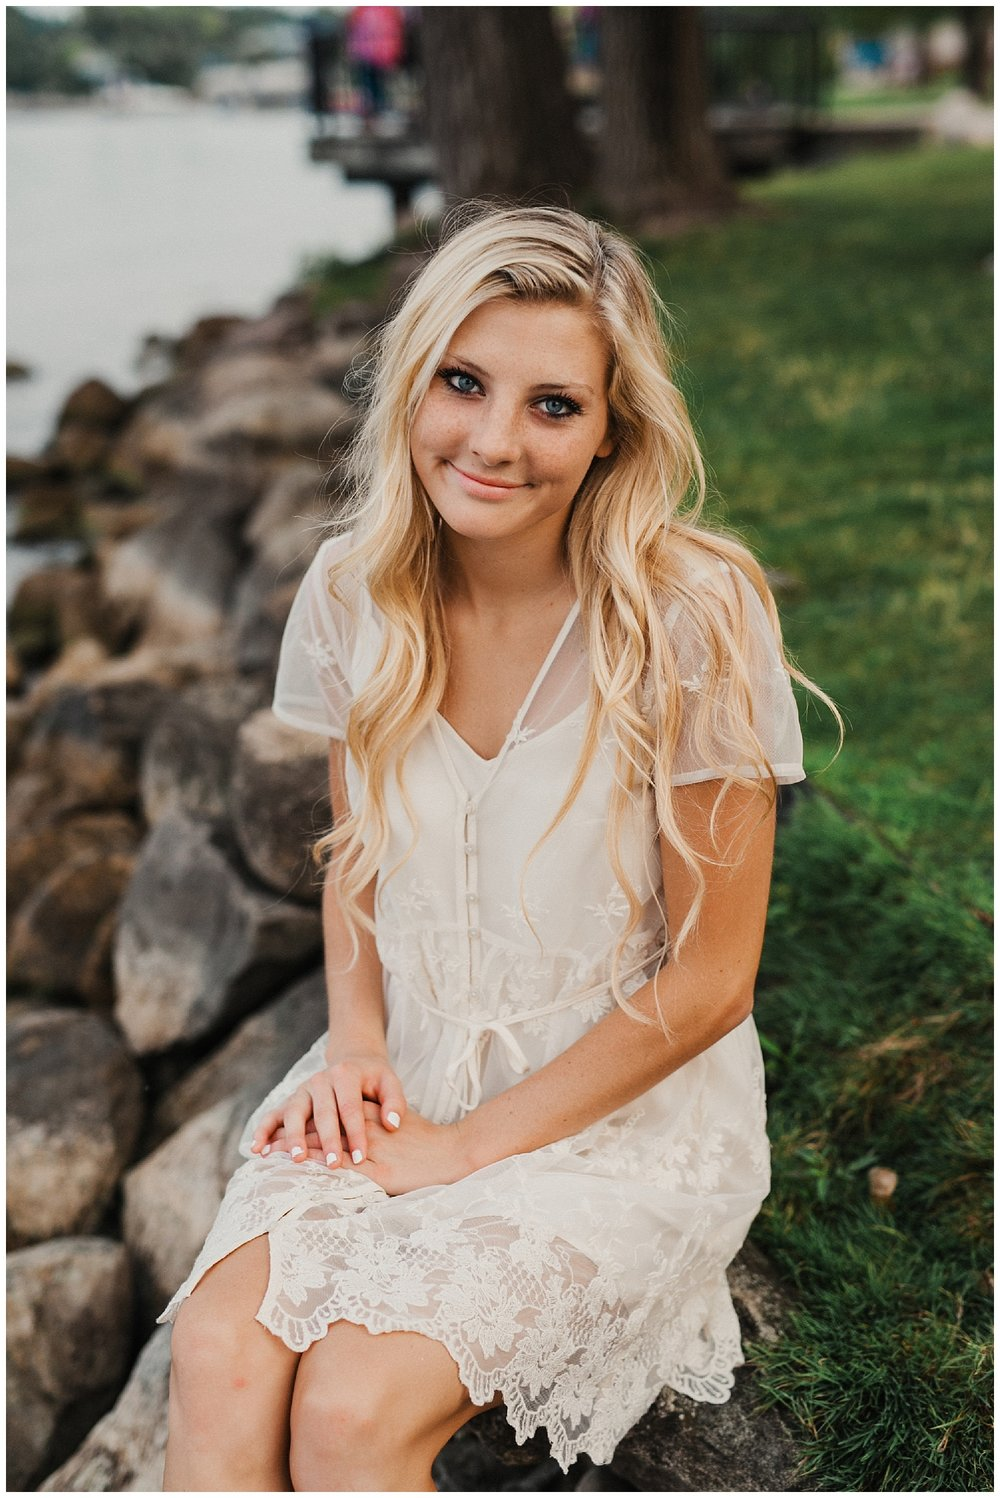 lindybeth photography - senior pictures - lexi-146.jpg